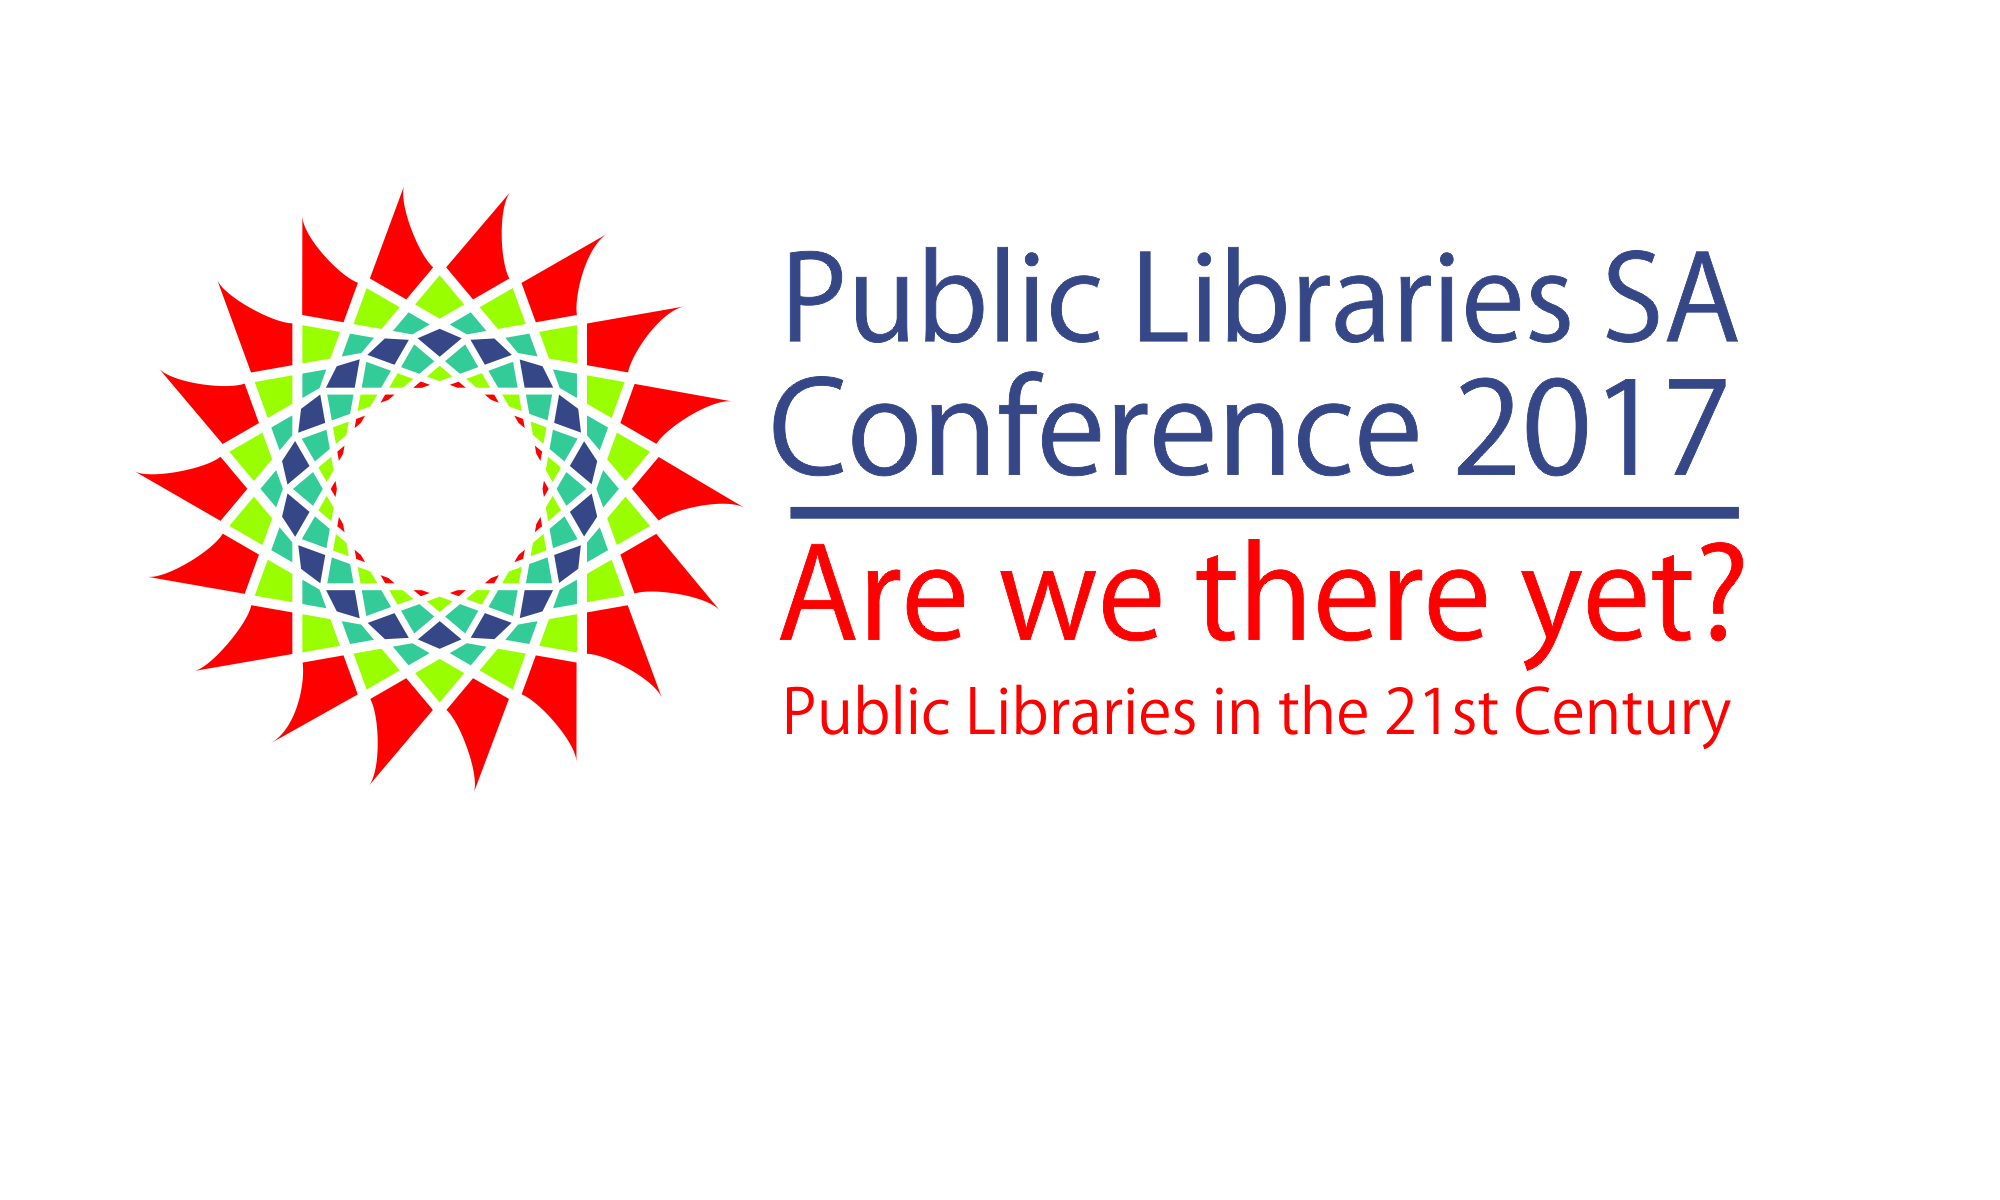 Public Libraries Conference 2017